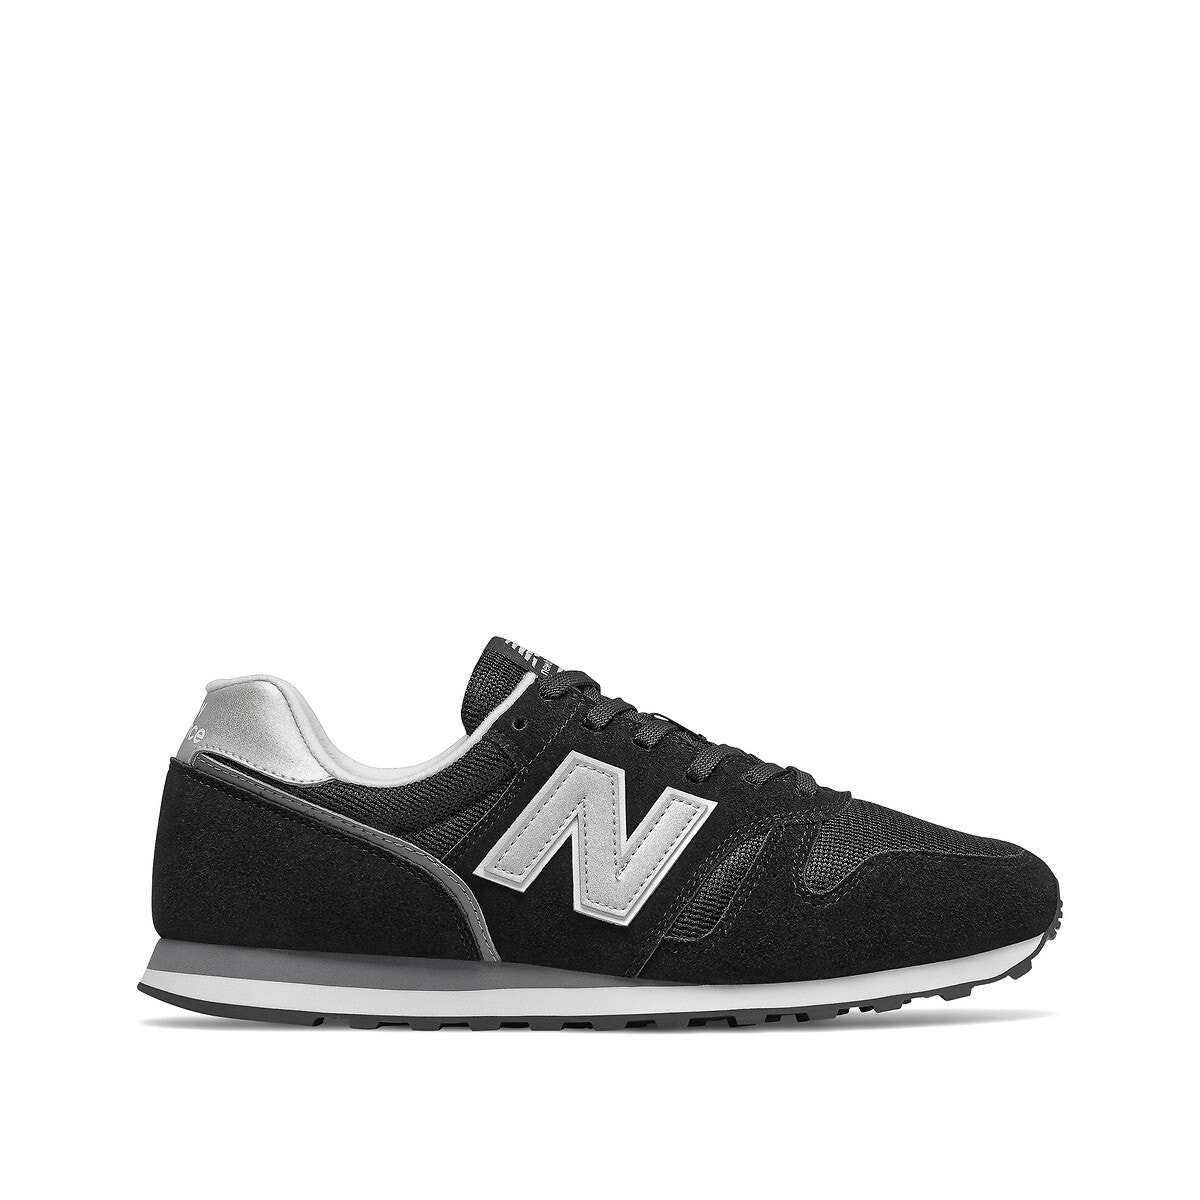 Chaussures homme New Balance | La Redoute